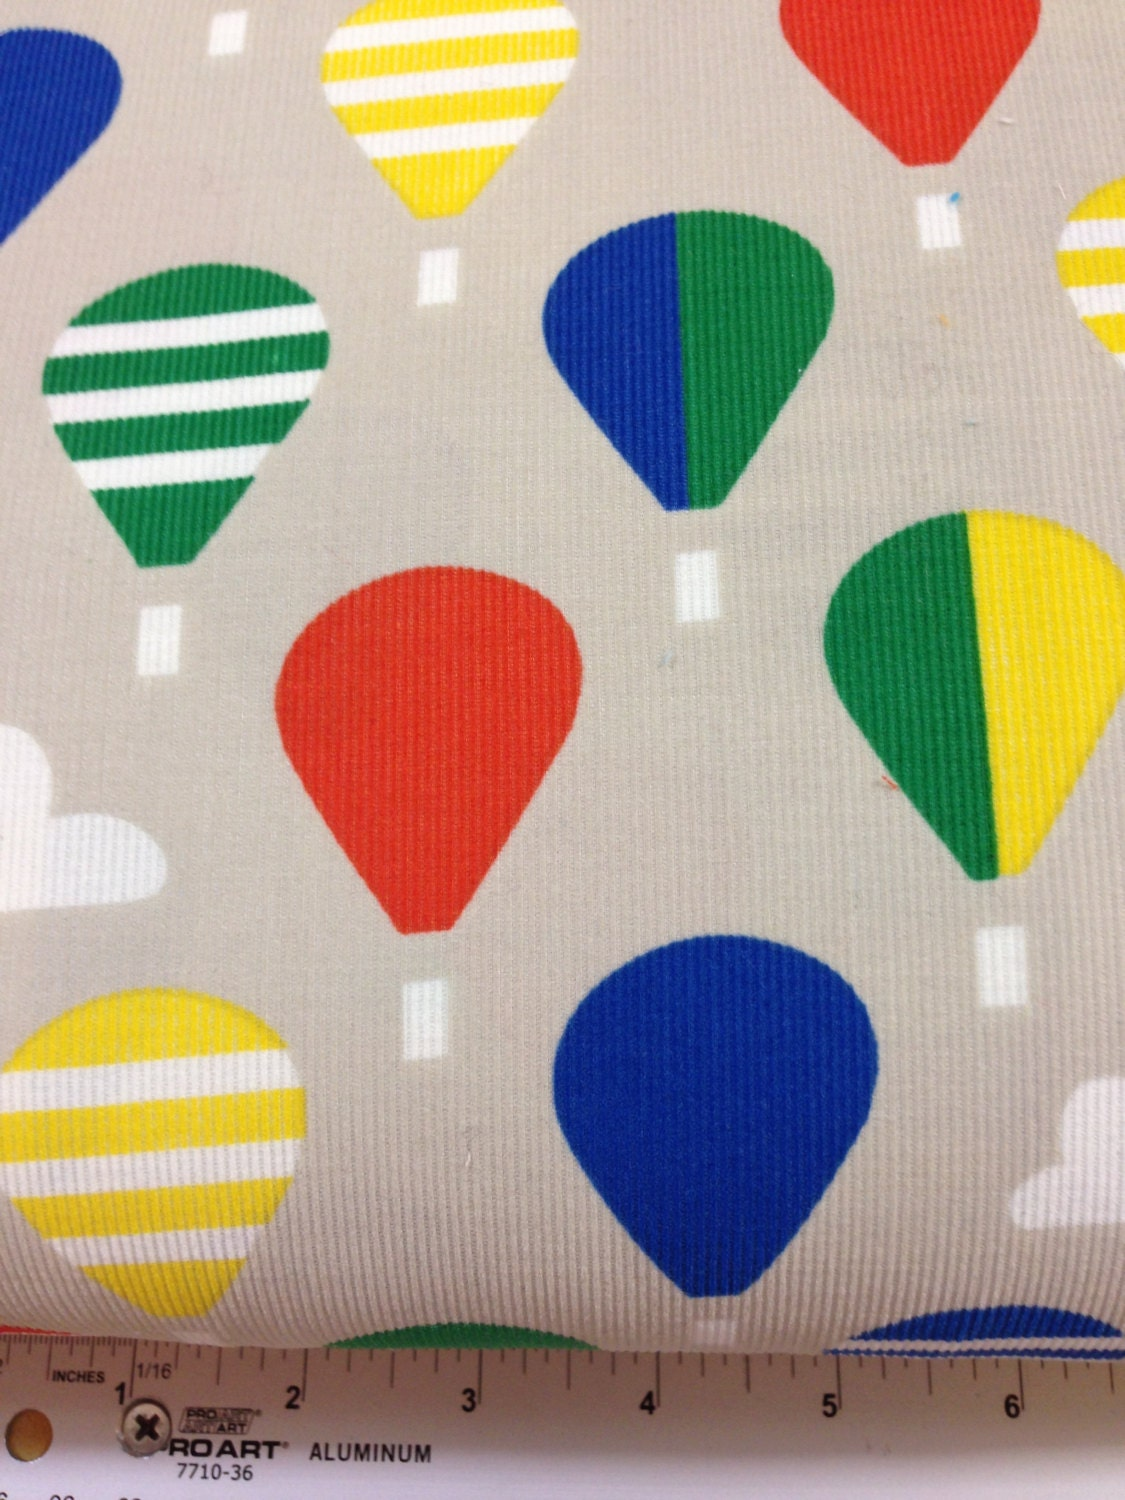 Cloud9 small world corduroy kids fabric 5 8 oz weight for Kids corduroy fabric